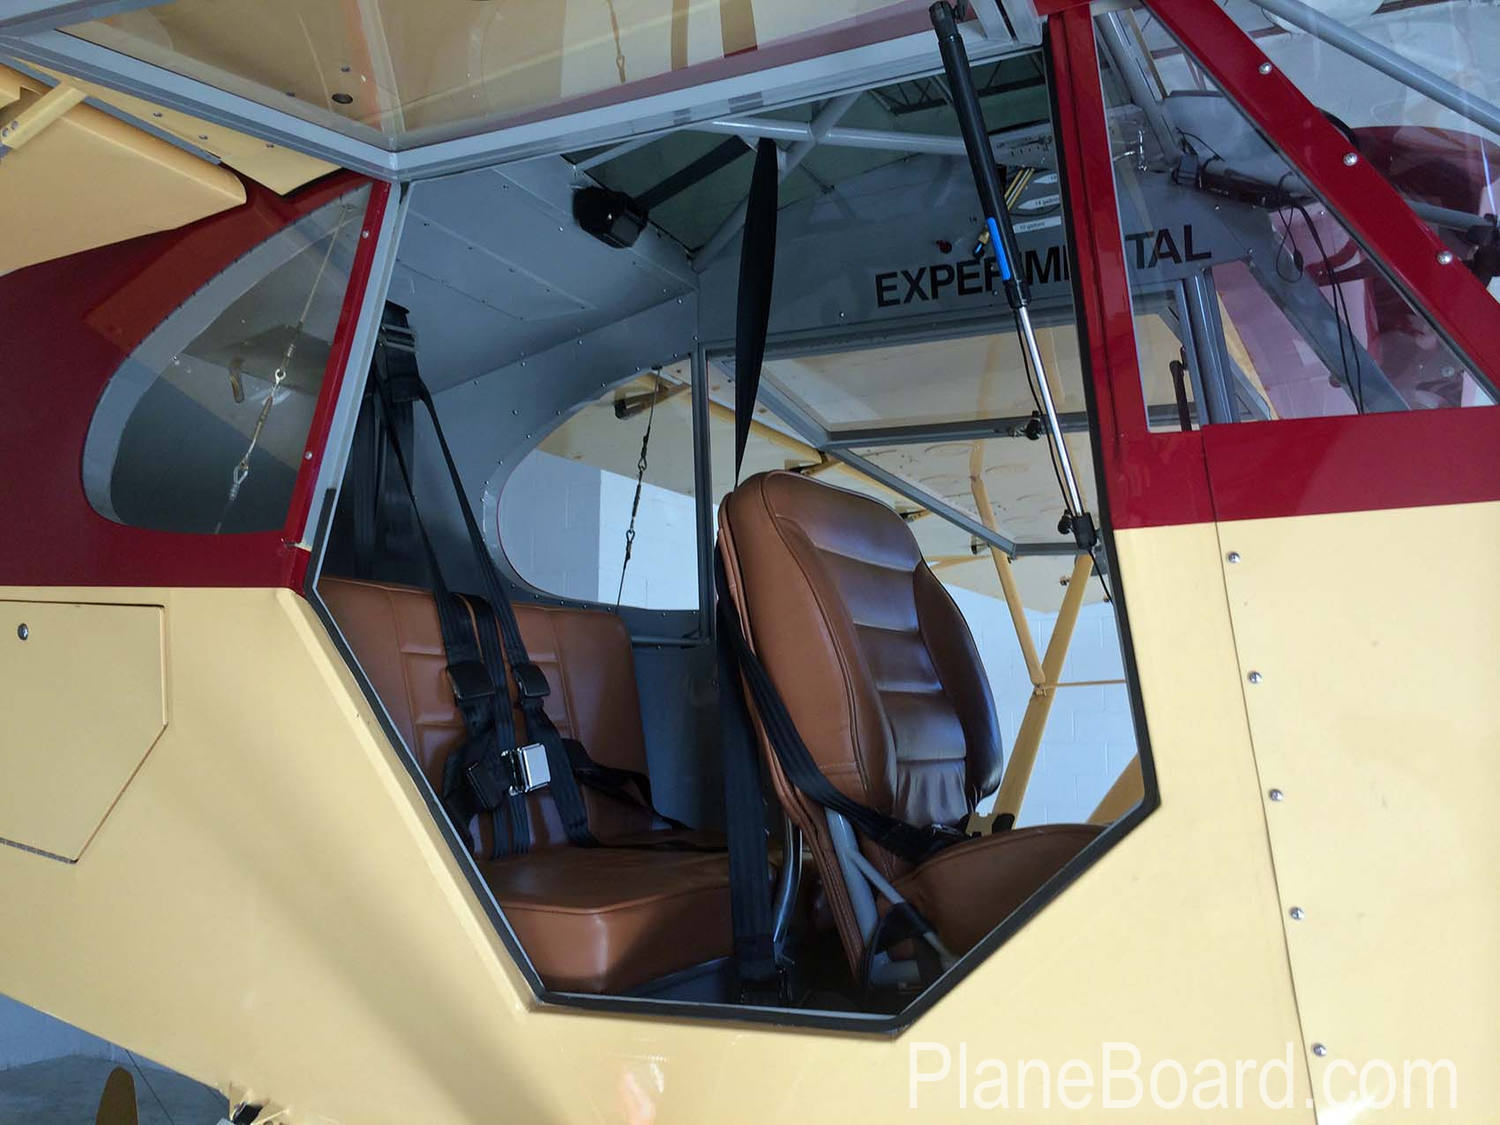 2010 Piper Super Cub interior 5